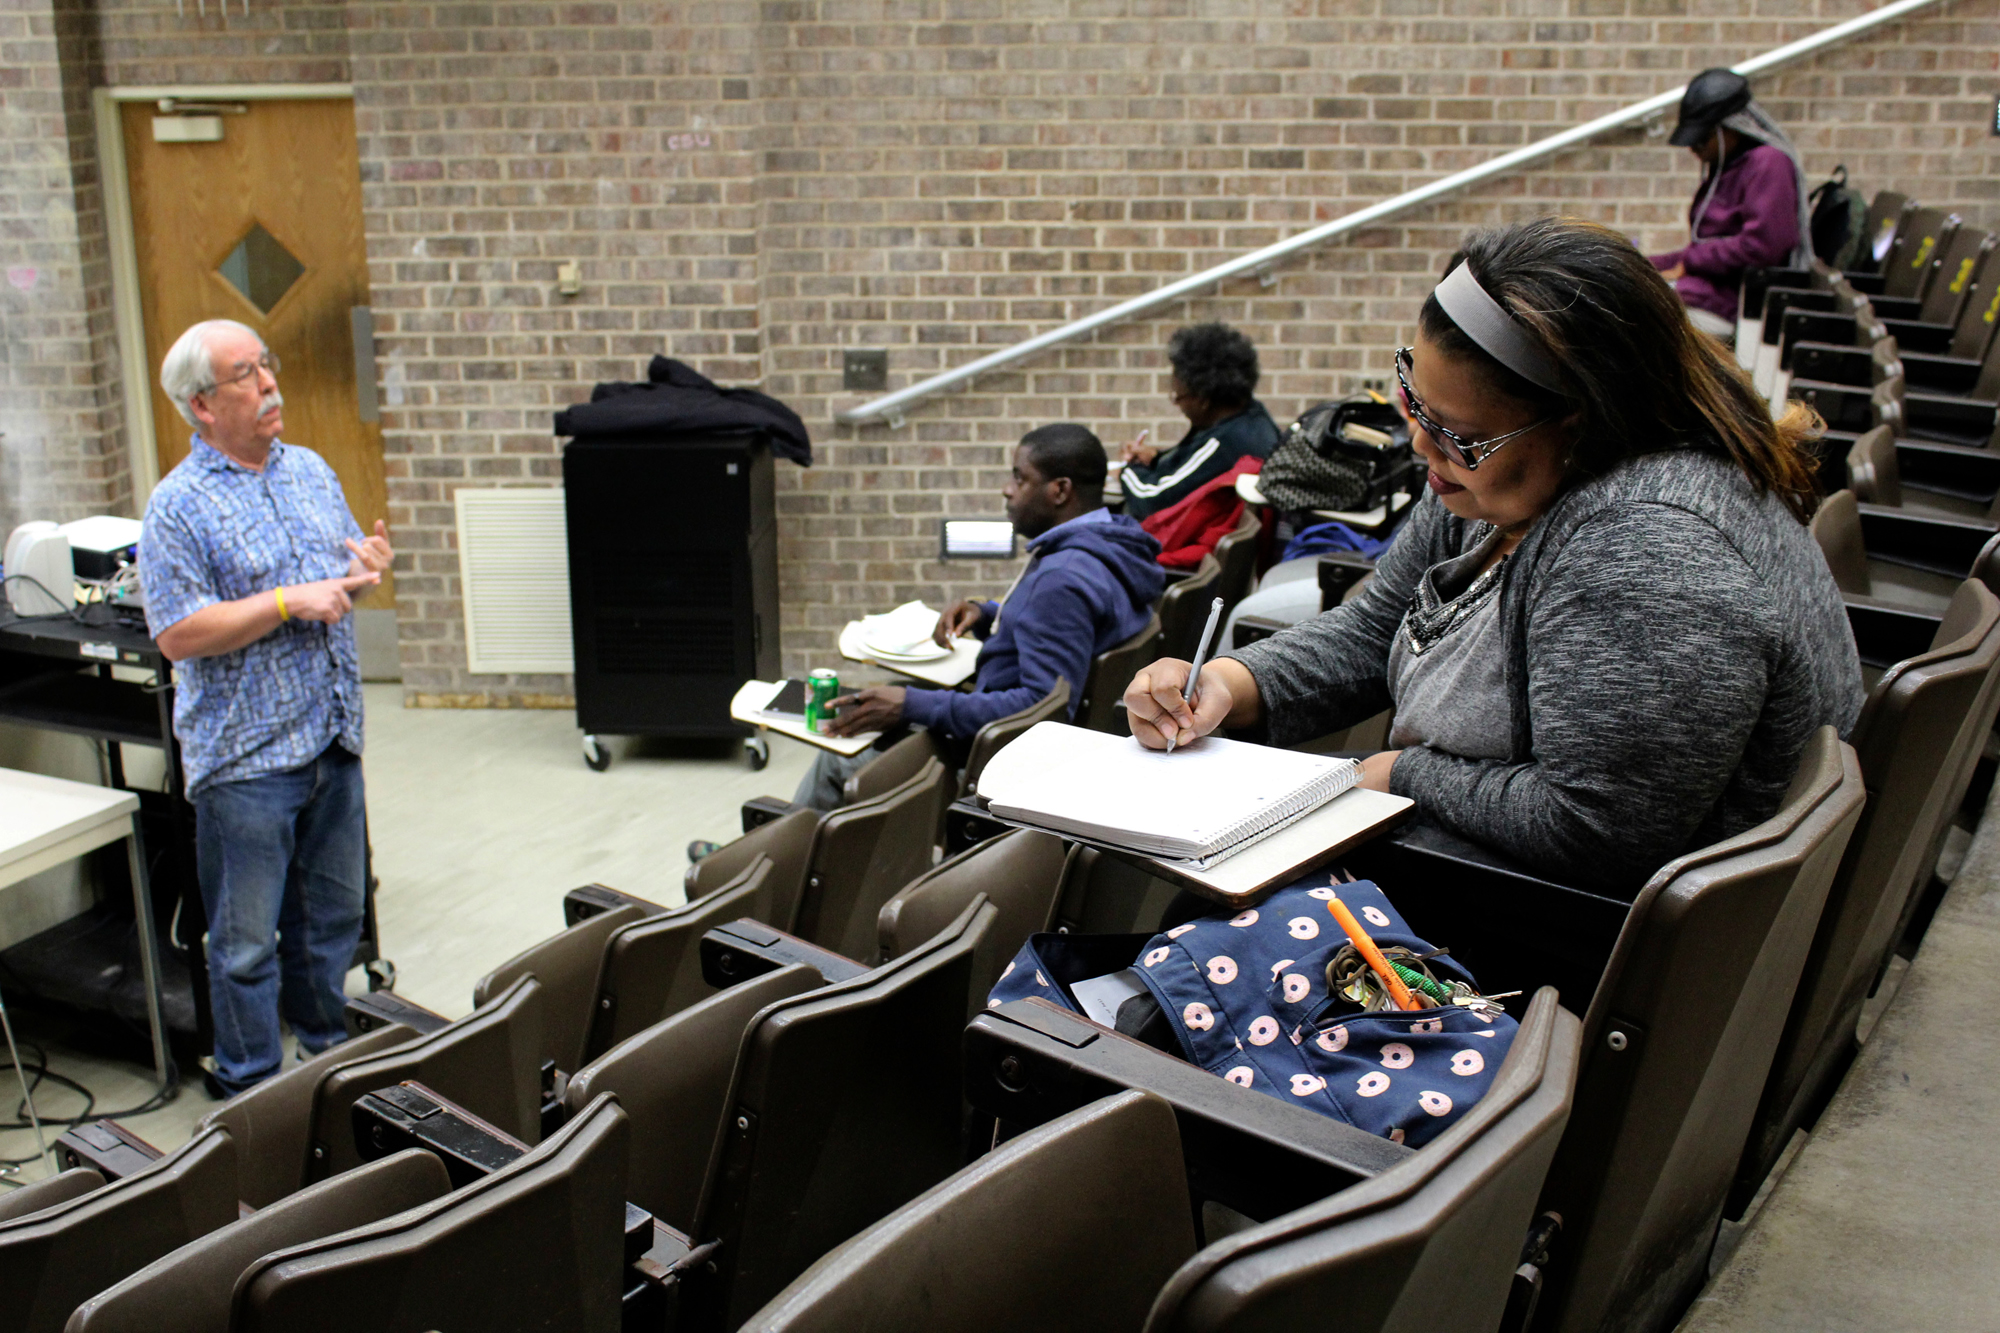 In this April 12, 2016 photo, Robert Bionaz, an associate professor of history at Chicago State University, lectures during a class at the university in Chicago. The school has a troubled history and has been hard hit by the state budget crisis, but students and experts say it remains a last shot for many to get a degree.